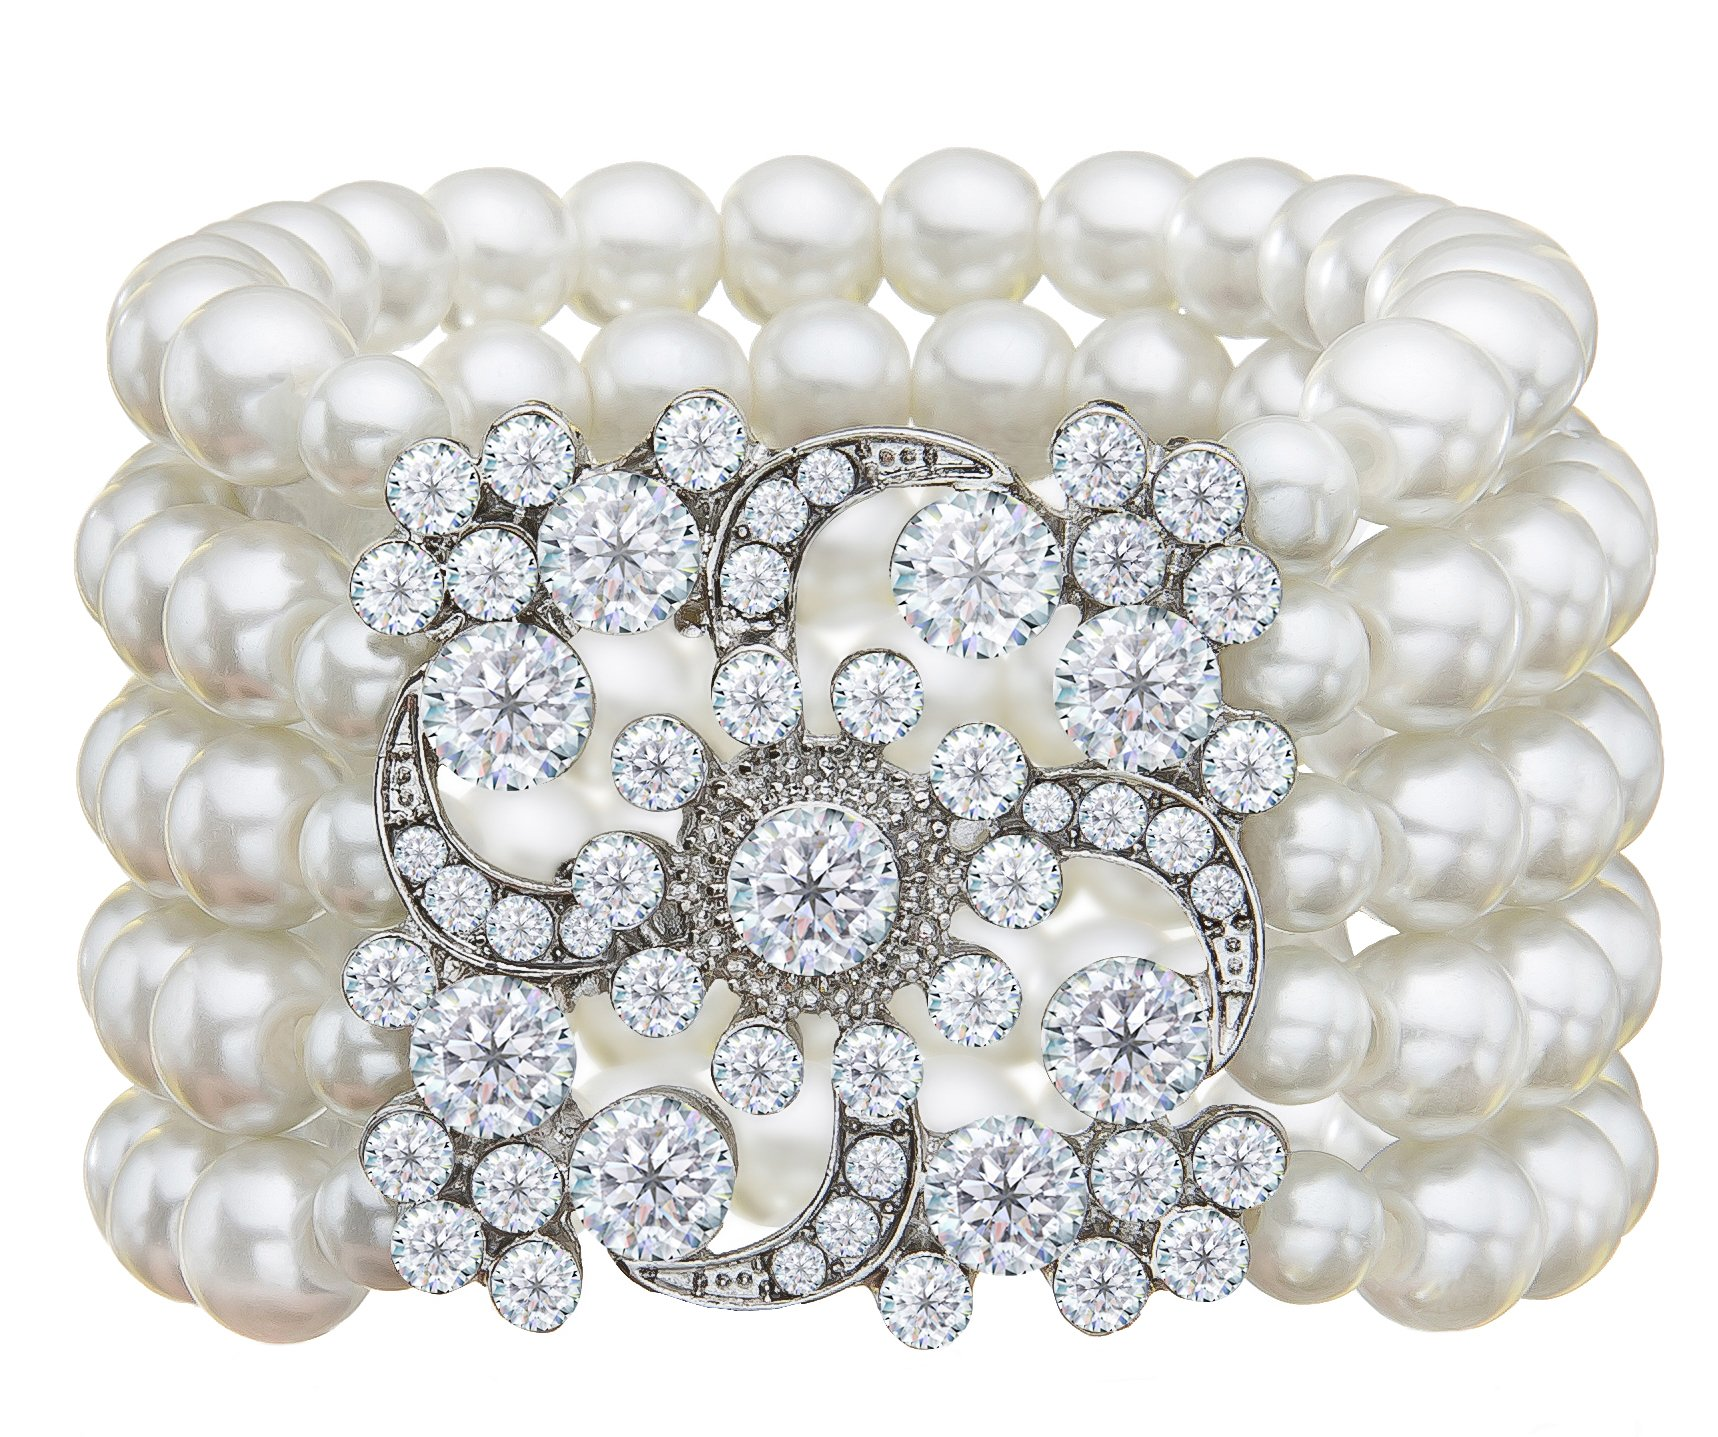 Zking Art Deco The Great Gatsby 5 Rows Faux Pearl Elastic Bracelet Bangle